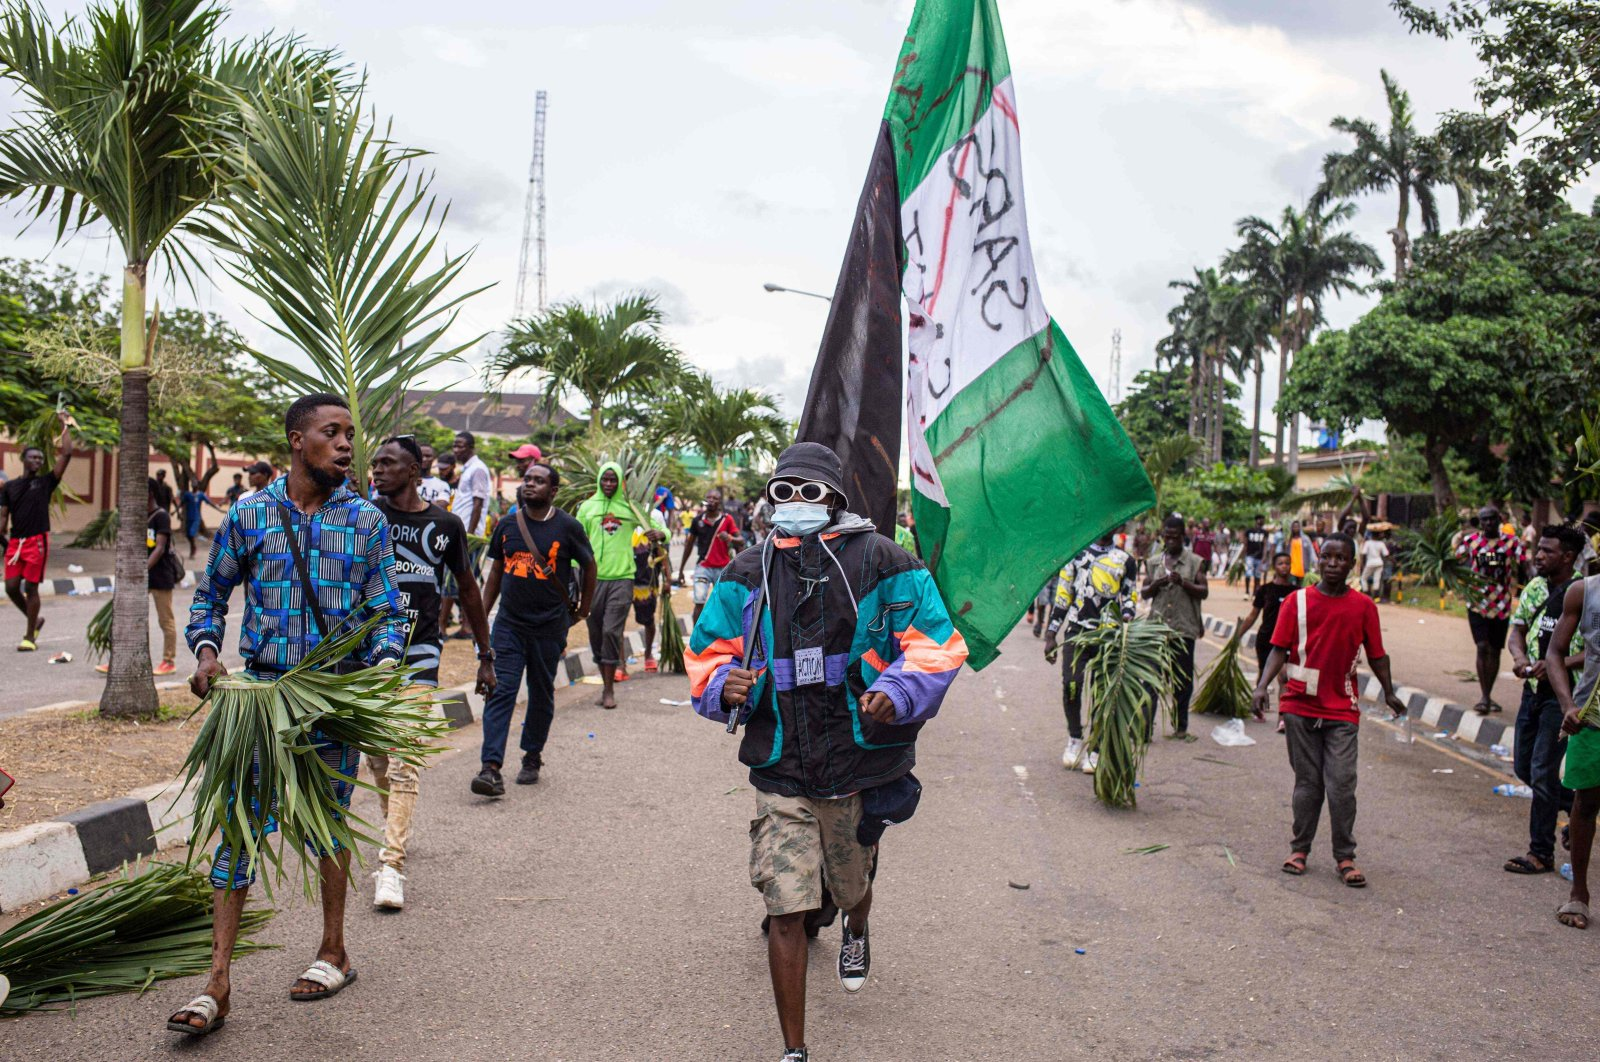 Protesters march at Alausa, the Lagos State Secretariat, Lagos, Oct. 20, 2020. (AFP Photo)